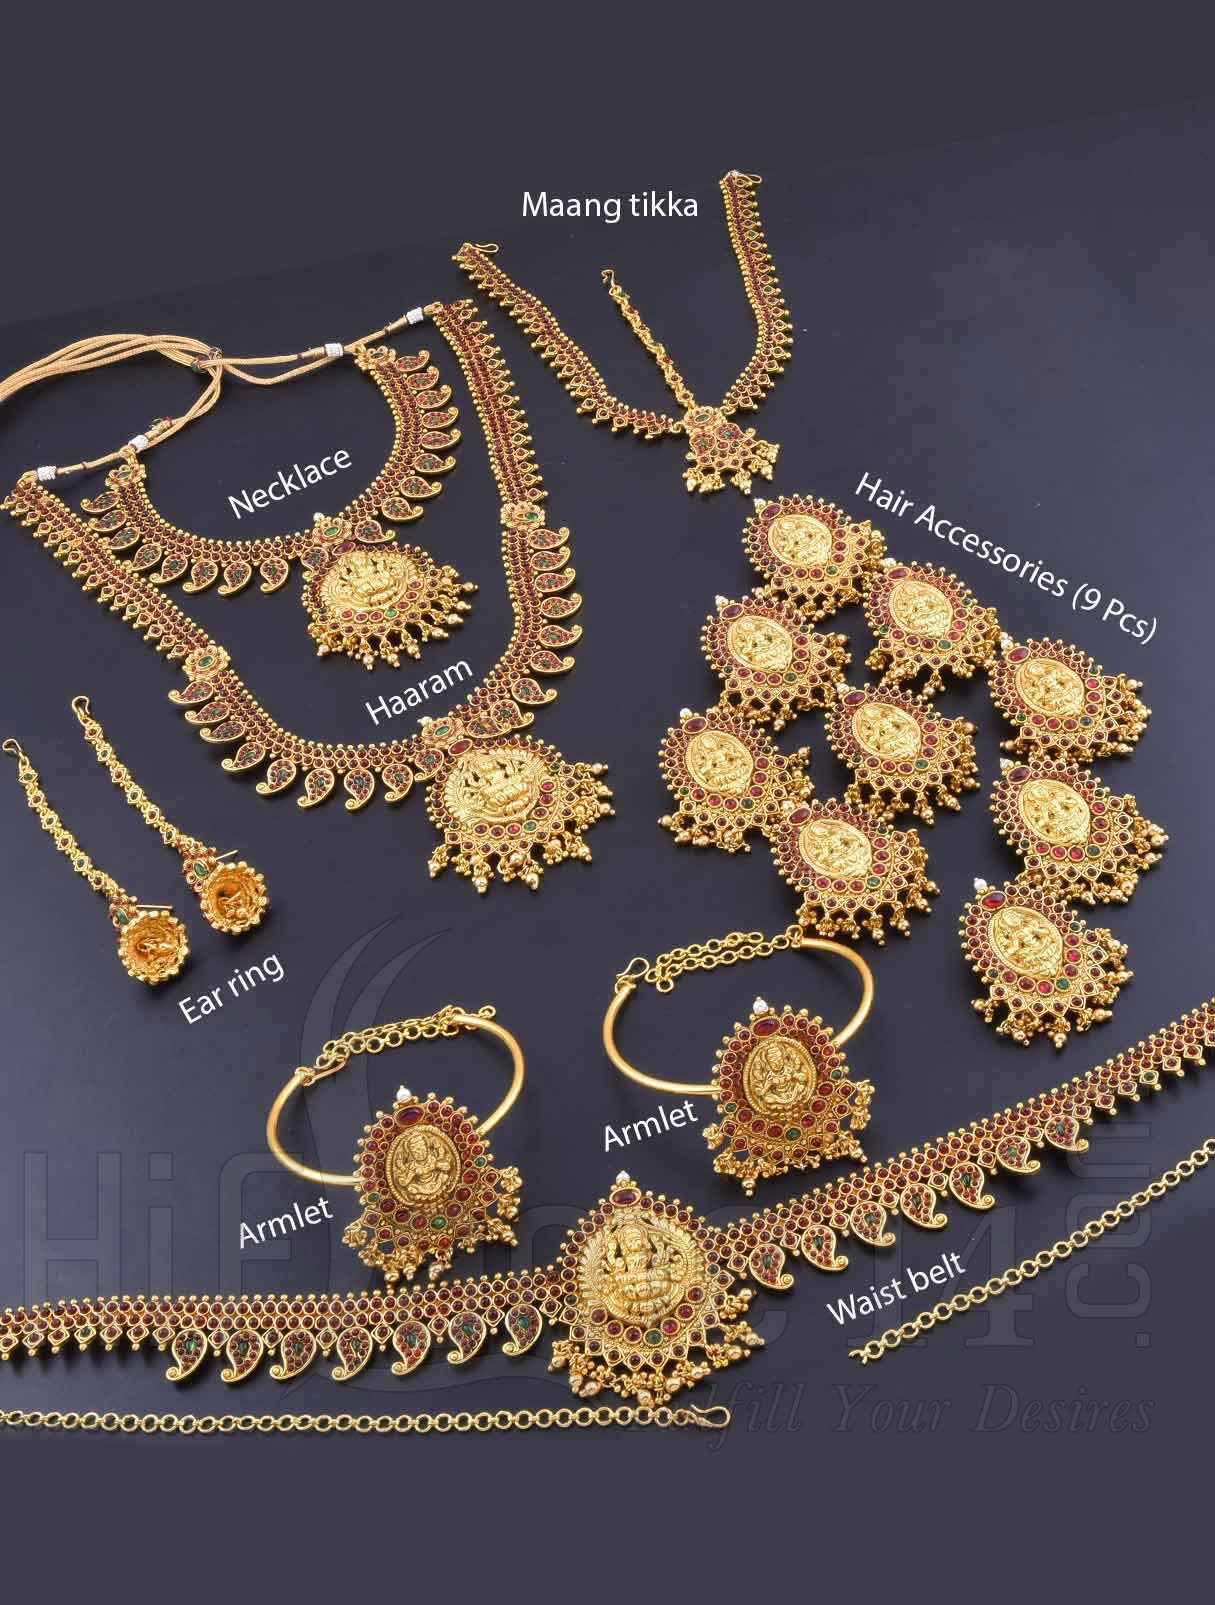 Indian Bridal Ethnic Jewelry Traditional Gold Plating Necklace Wedding Set 9 Pc. Bridal & Wedding Party Jewelry